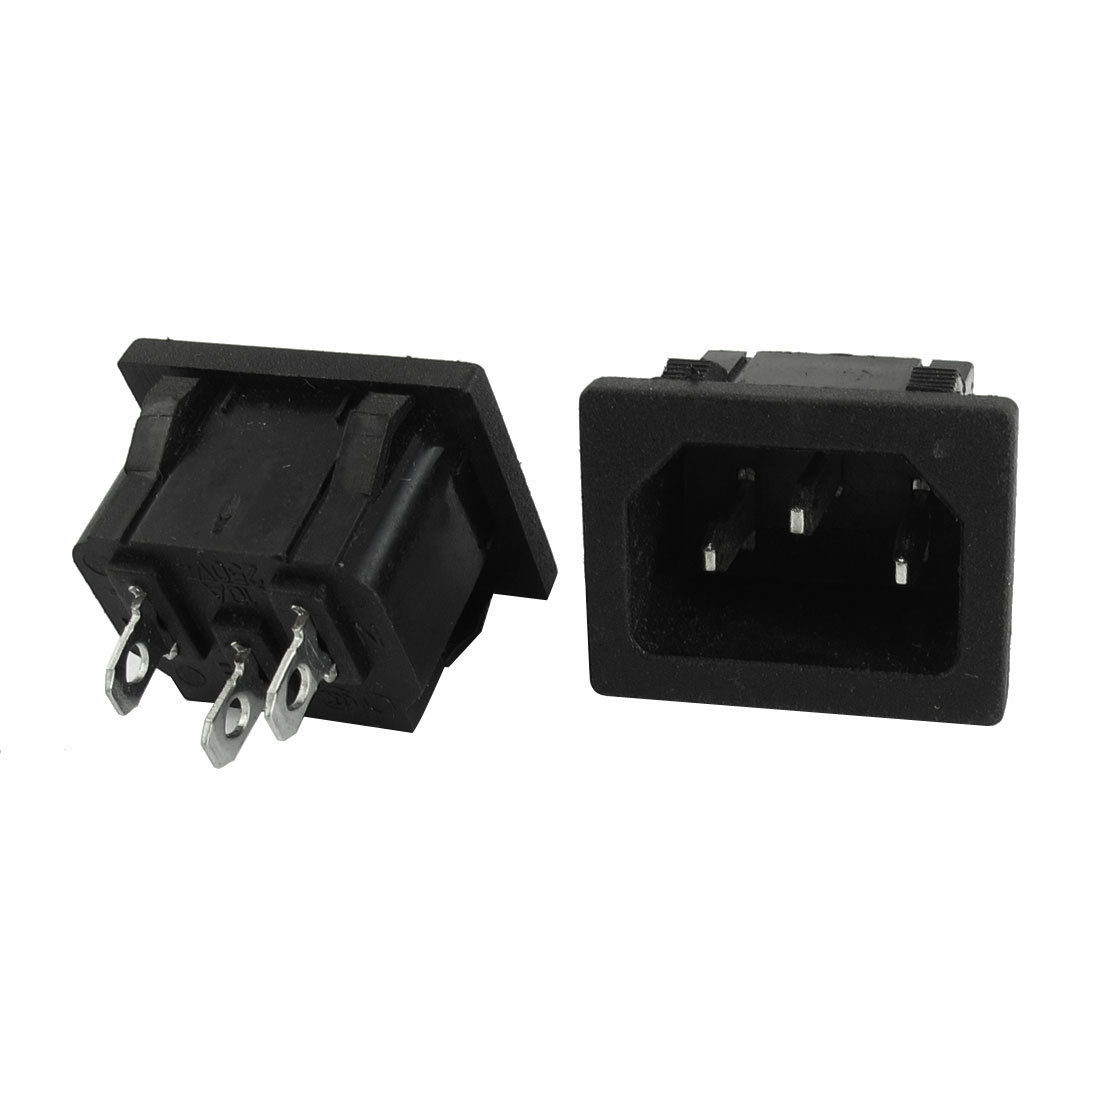 2Pcs AC250V 10A Snap in Mounting IEC320 C14 3Pin Male Inlet Black Plastic Power Adapter Socket Replacement